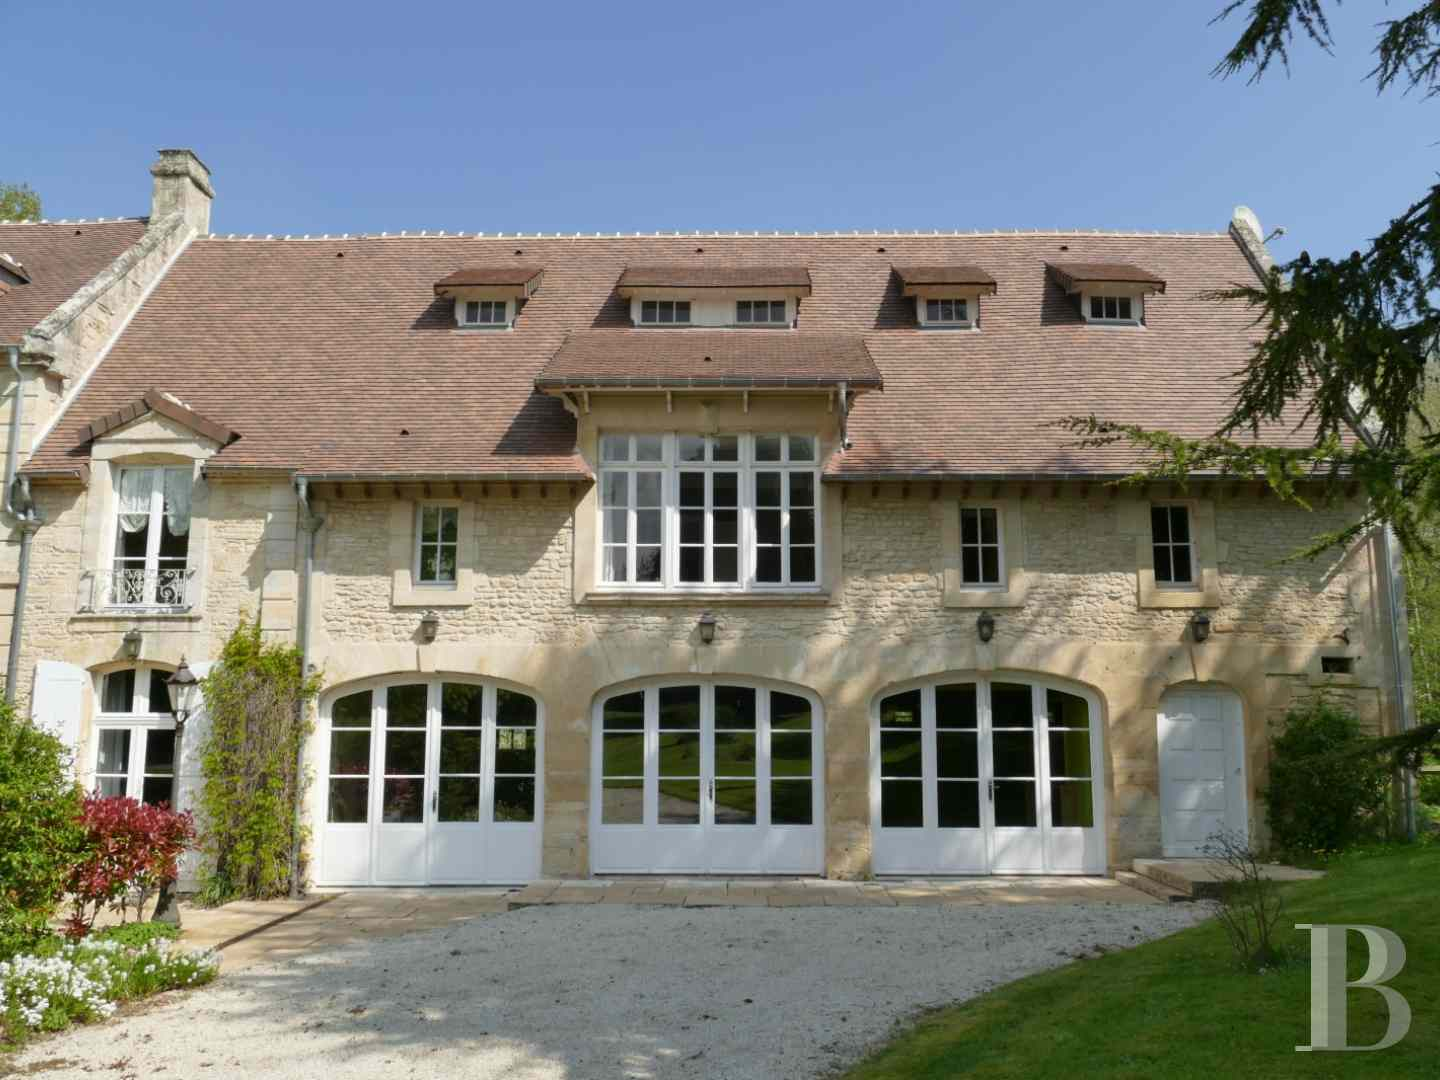 France mansions for sale lower normandy 4025  - 5 zoom